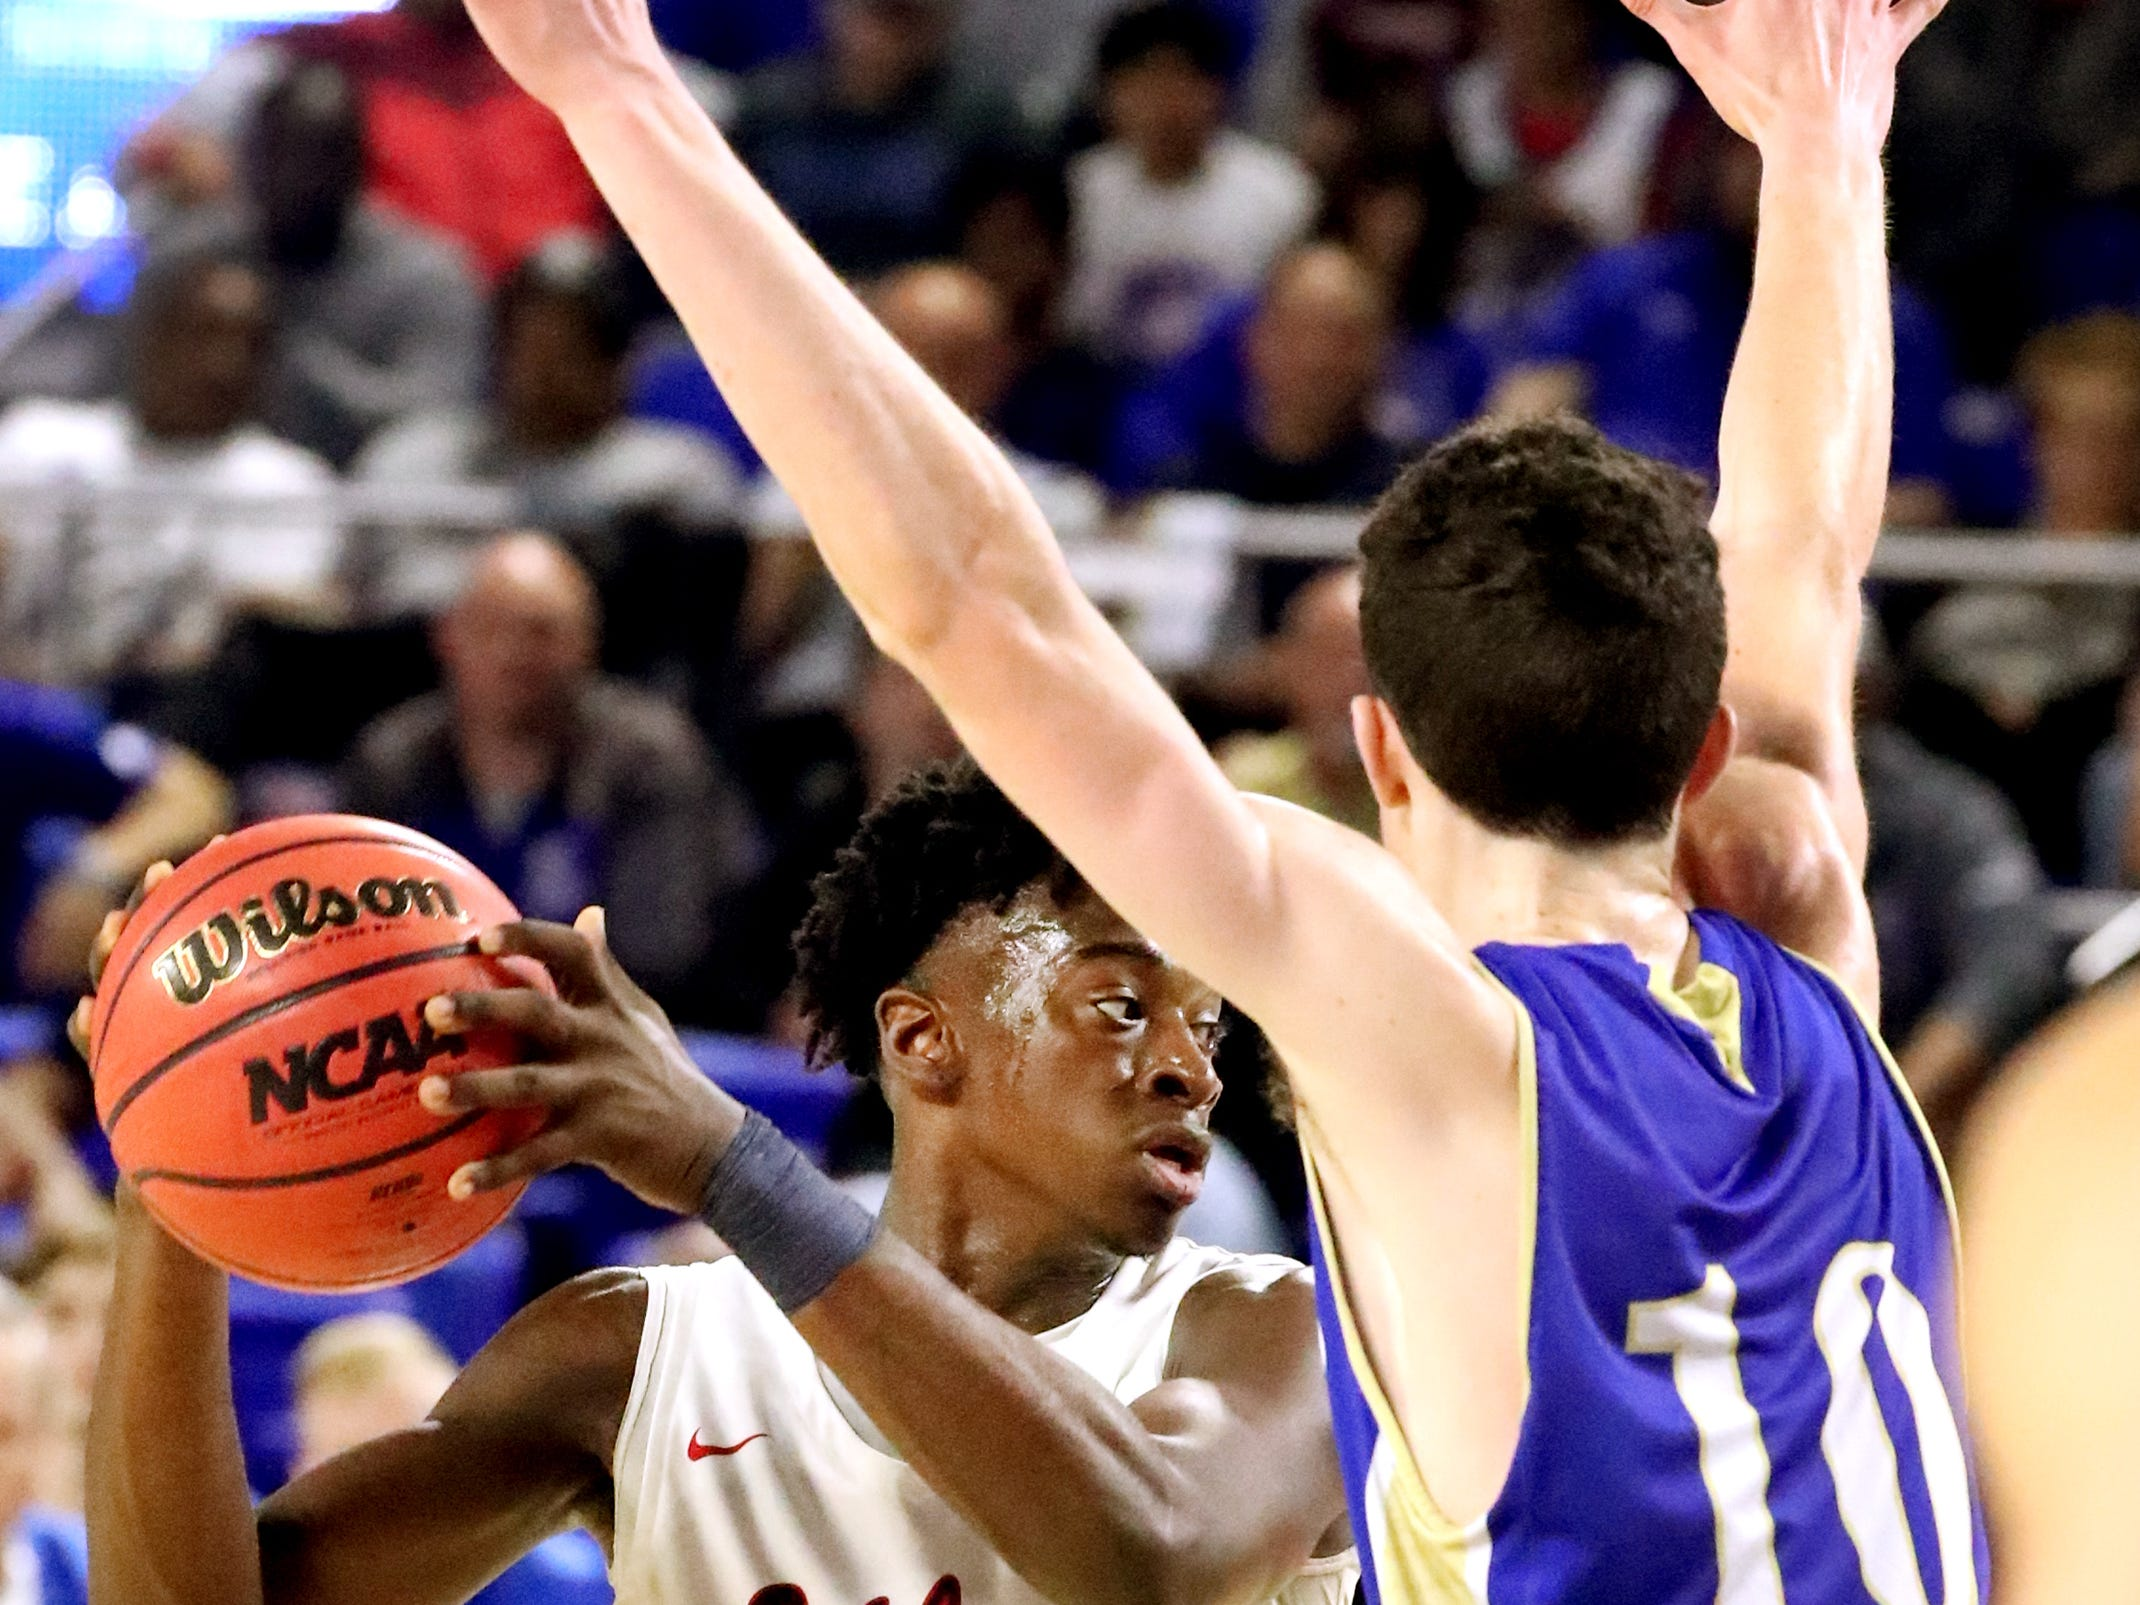 Oakland's Dearre McDonald (3) looks to pass the ball as Brentwood's John Windley (10) guards him during the quarterfinal round of the TSSAA Class AAA Boys State Tournament, on Thursday, March 14, 2019, at Murphy Center in Murfreesboro, Tenn.